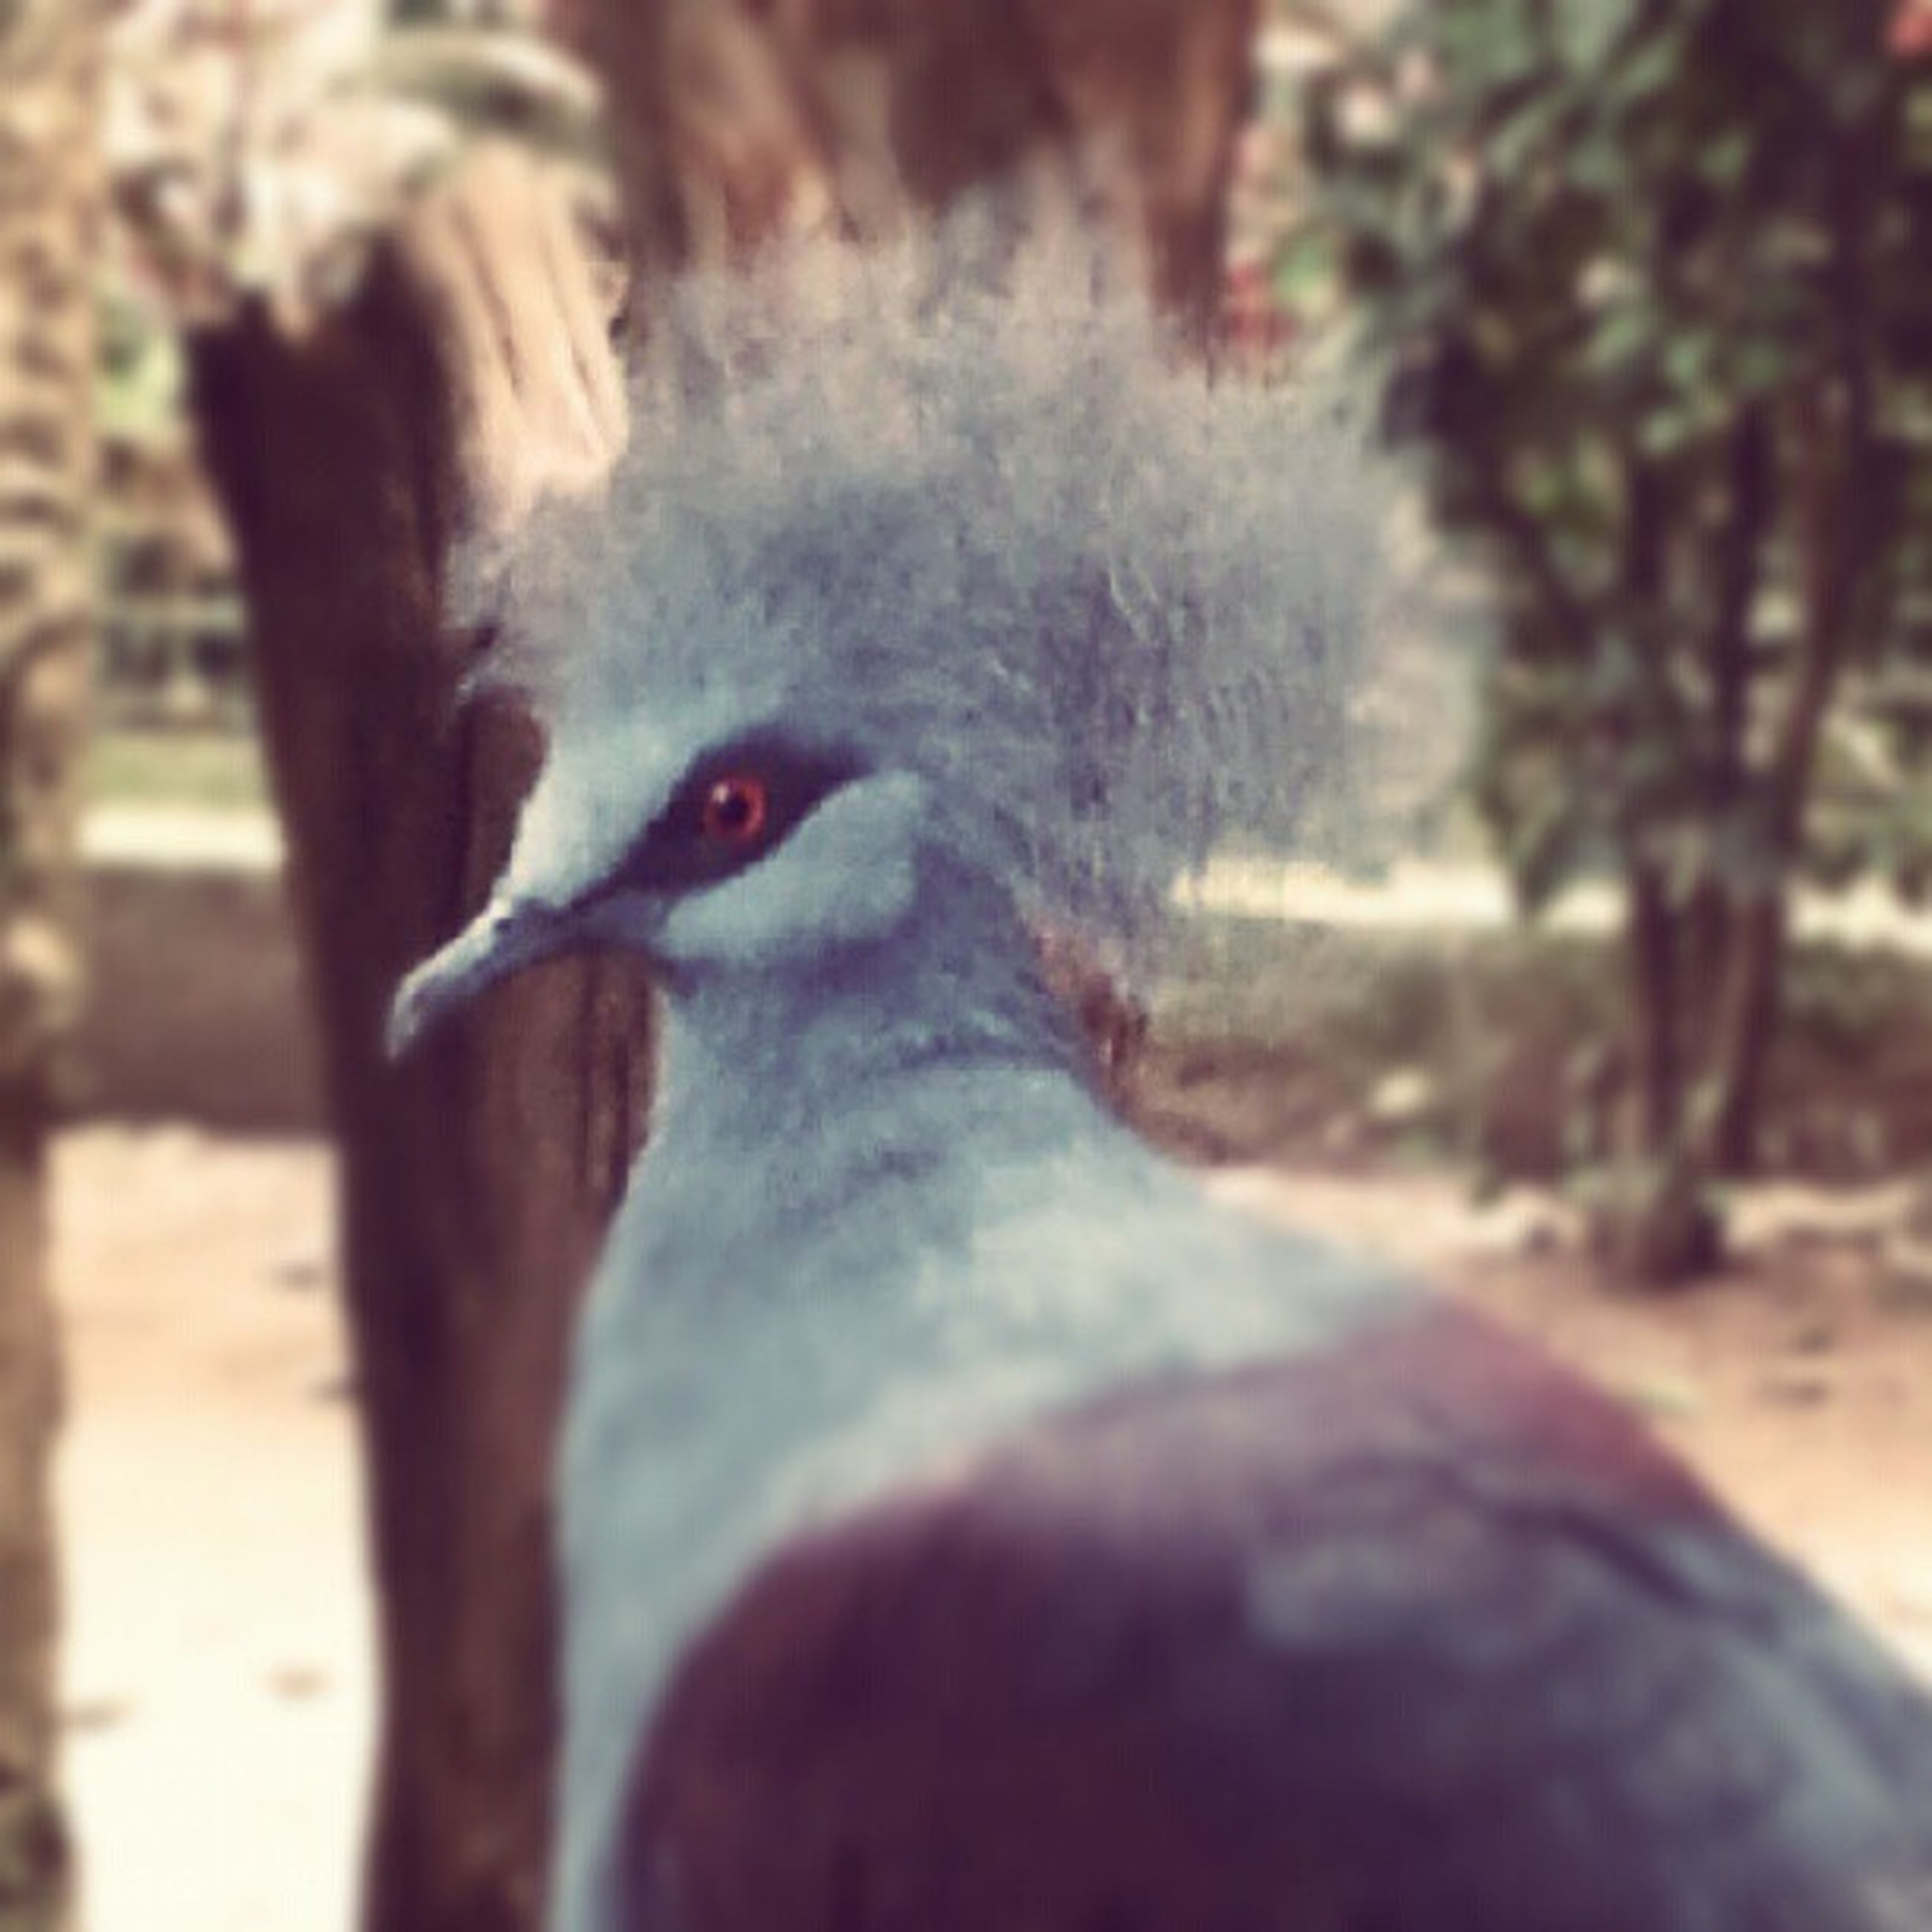 animal themes, one animal, focus on foreground, close-up, animals in the wild, mammal, wildlife, bird, domestic animals, animal head, livestock, animal body part, day, outdoors, nature, zoology, part of, vertebrate, no people, looking away